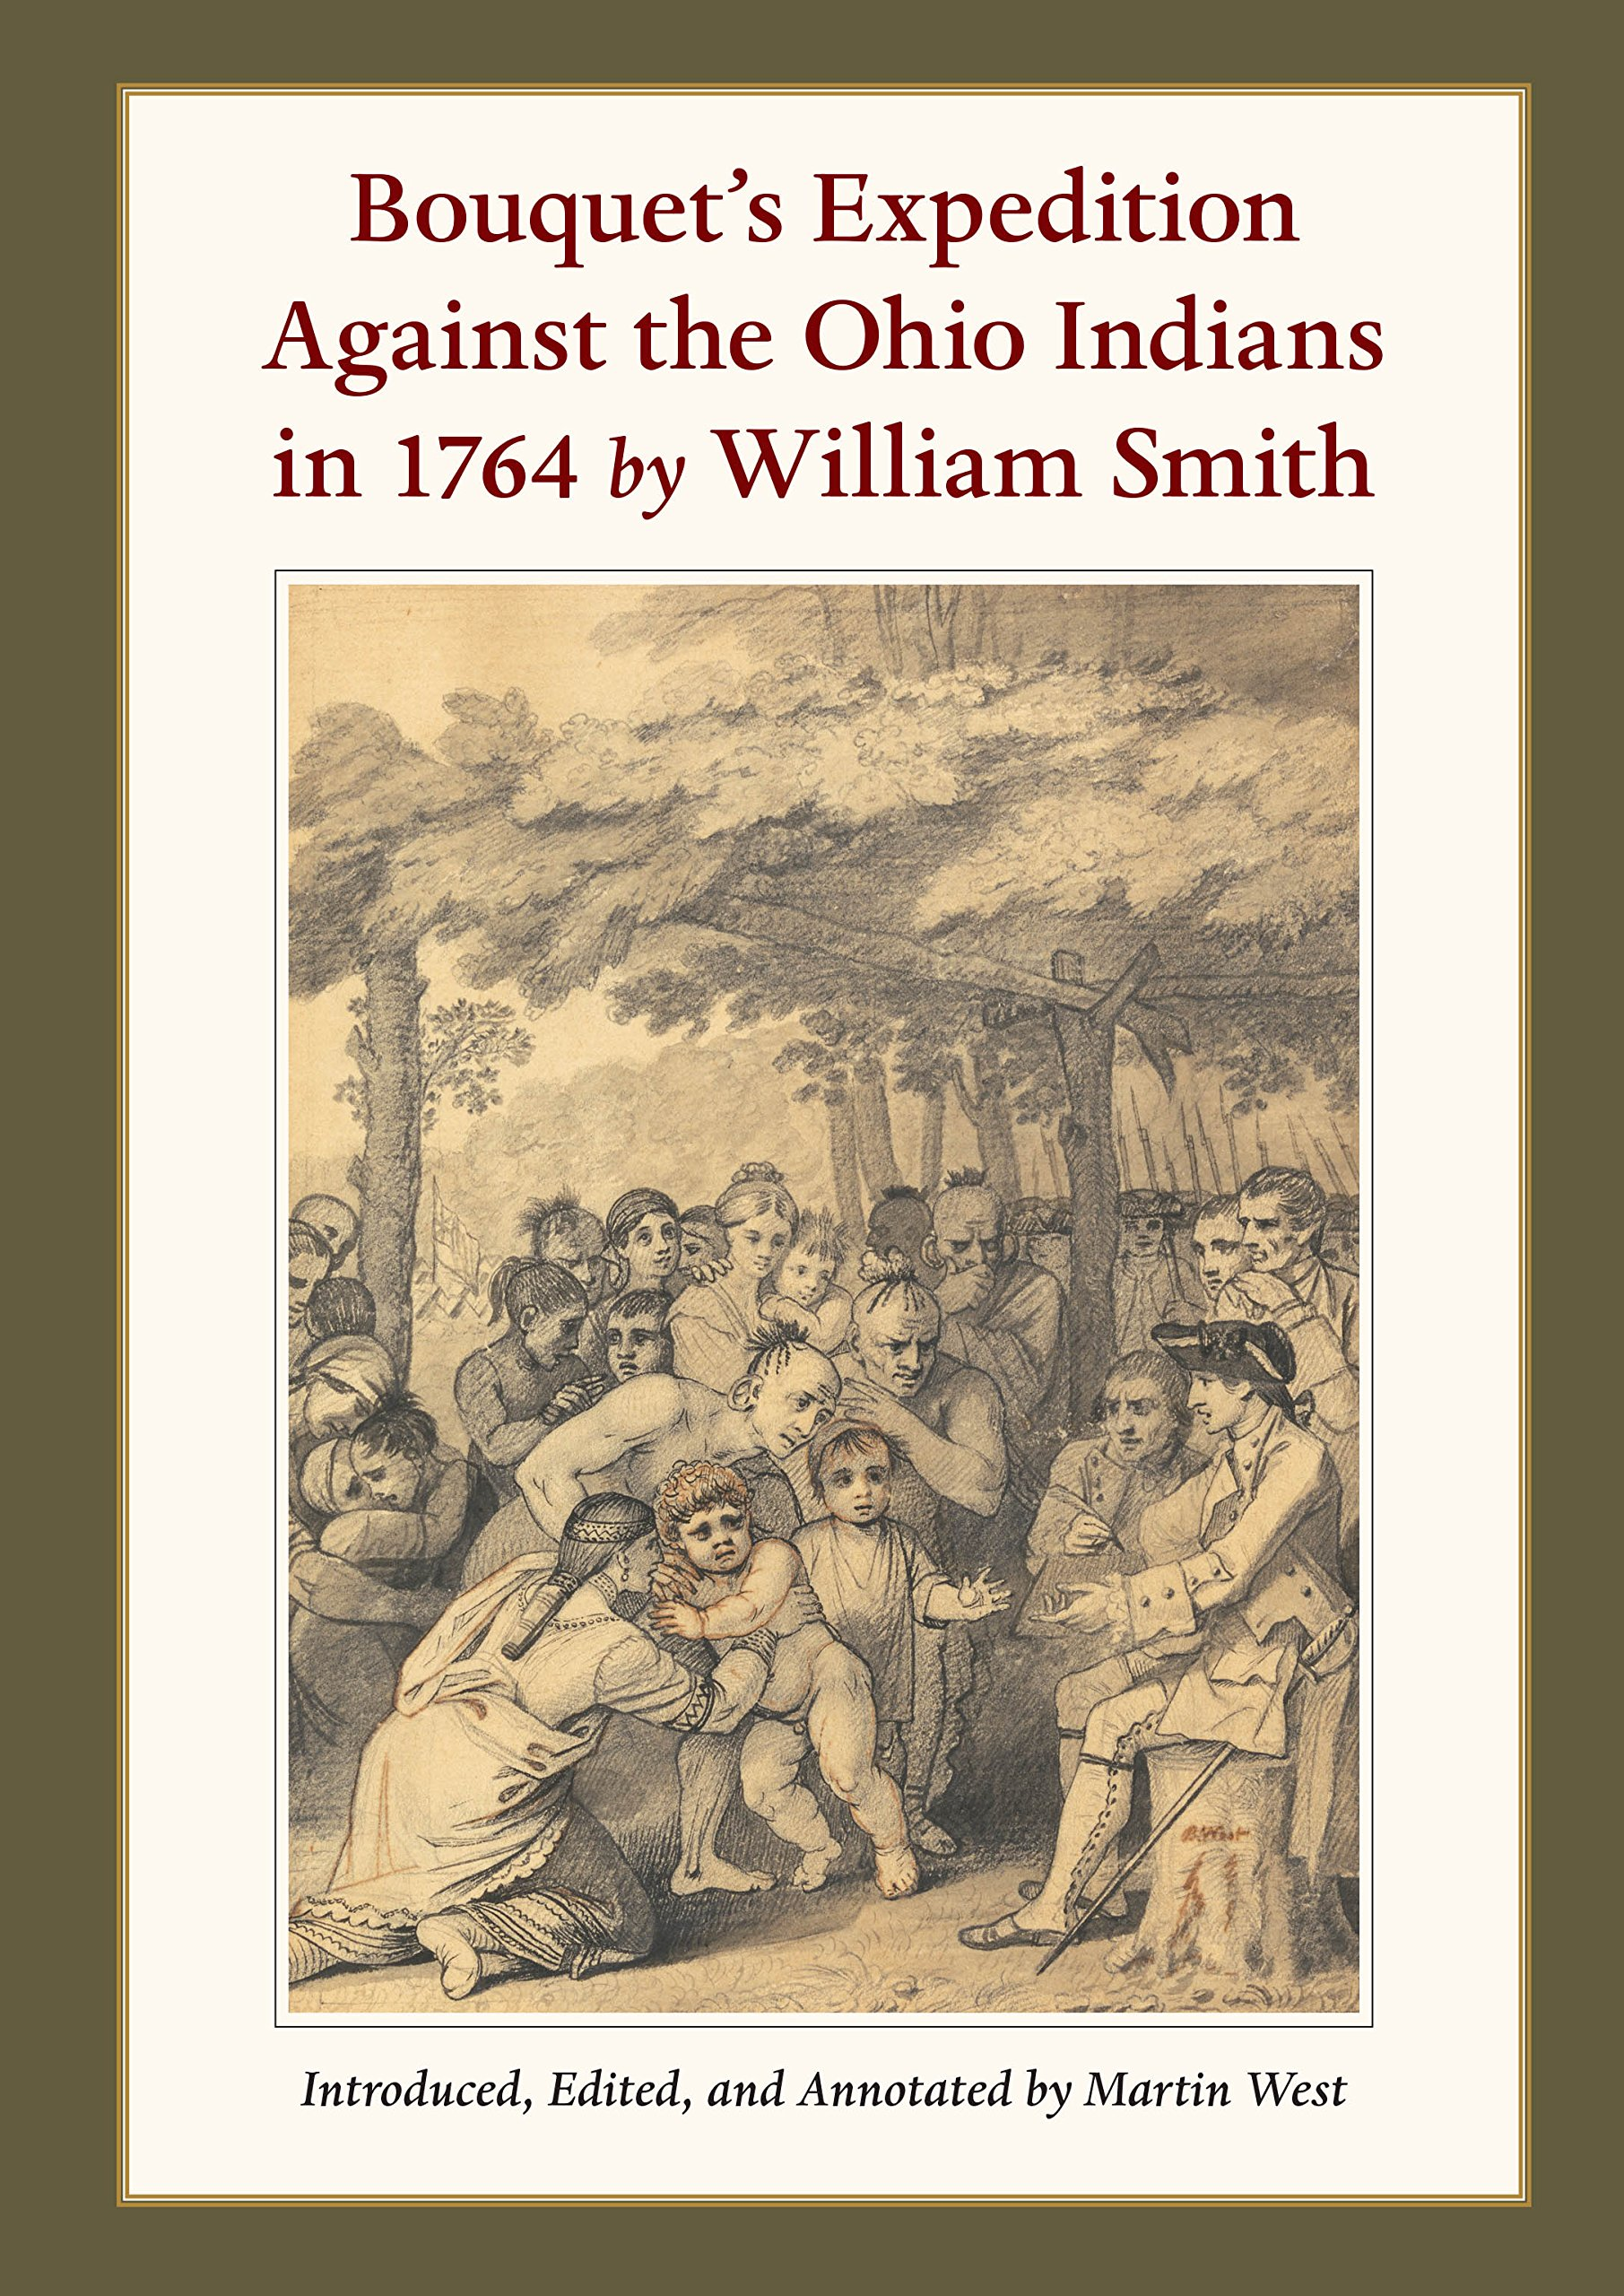 Bouquet's Expedition Against The Ohio Indians in 1764 by William Smith:  Martin West: 9781606352946: Amazon.com: Books